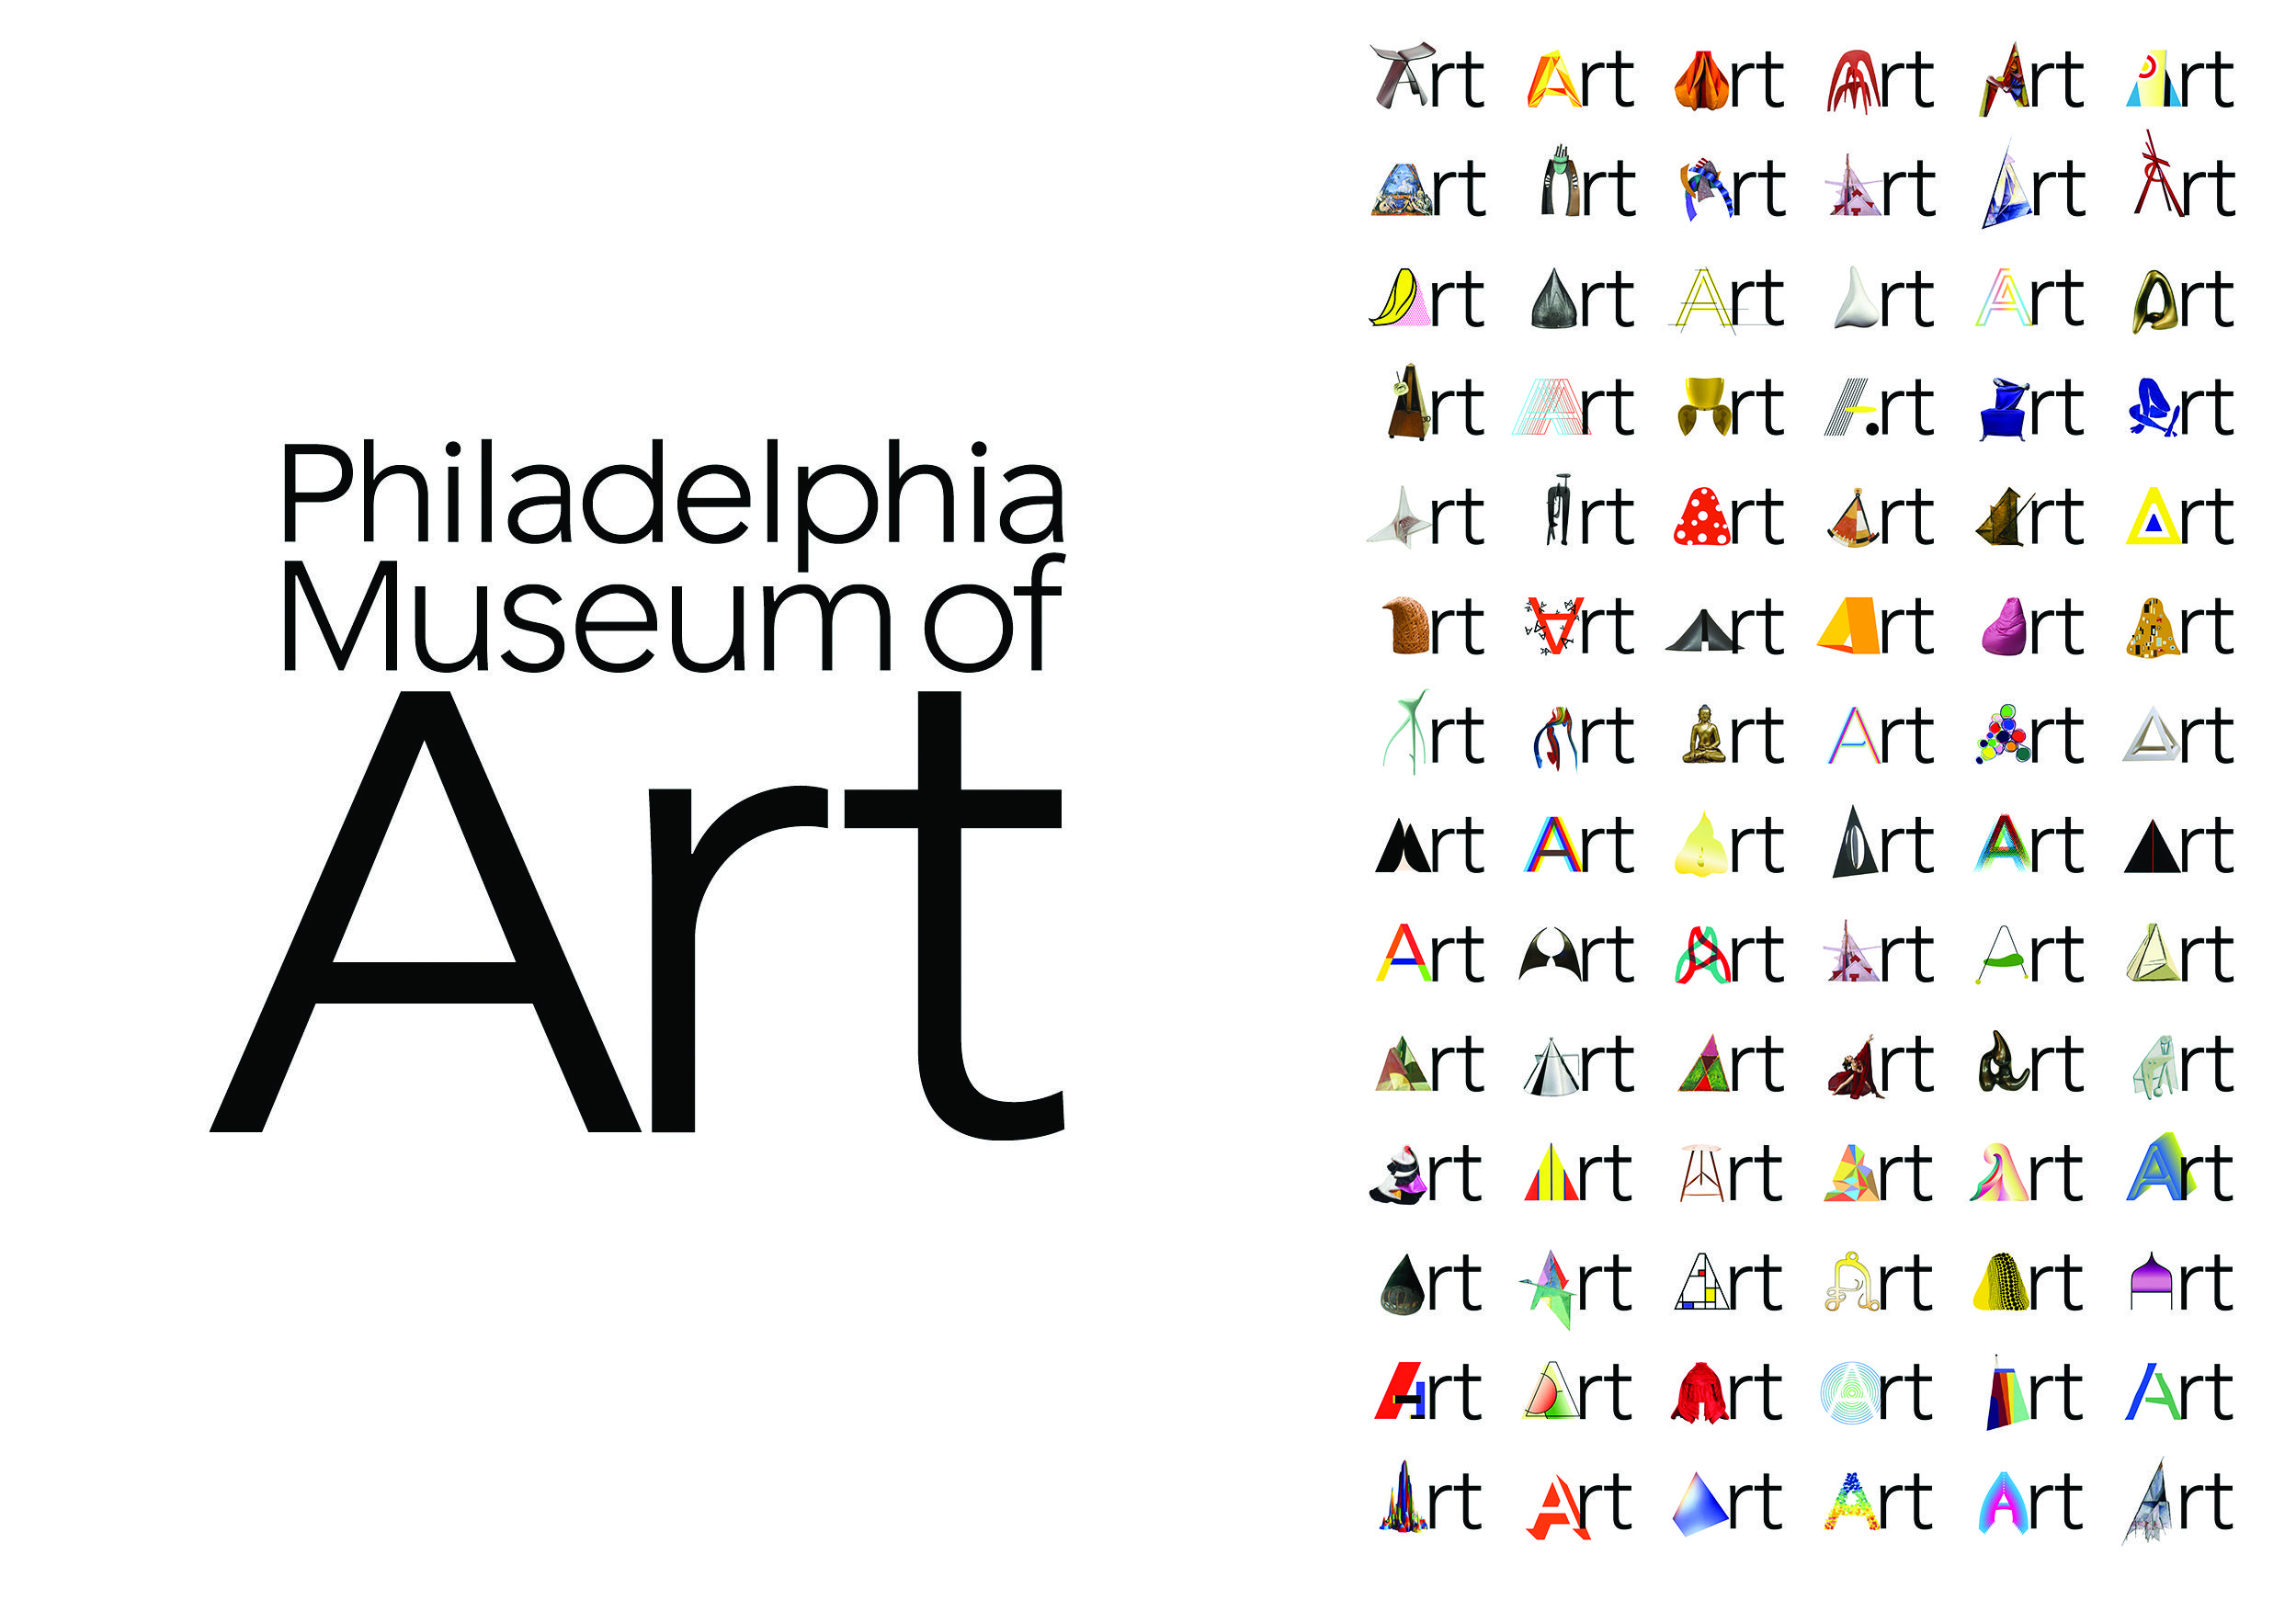 The Philadelphia Museum of Art - Dynamic logo system